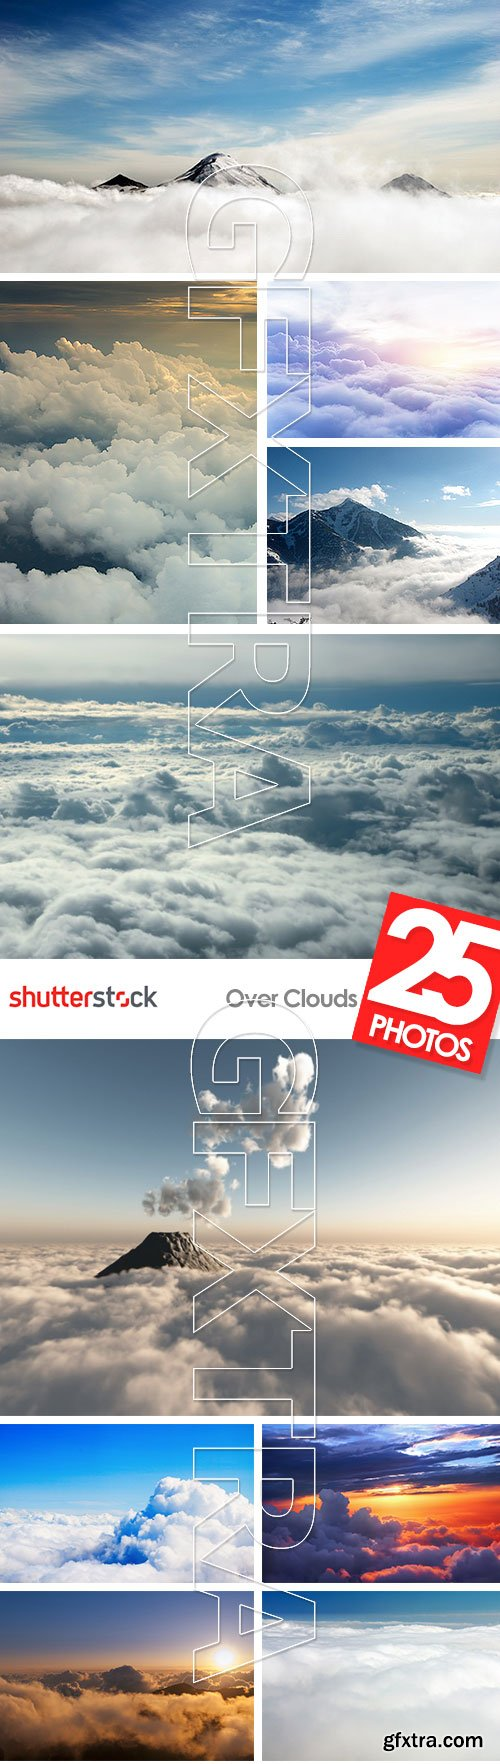 Over Clouds 25xJPG